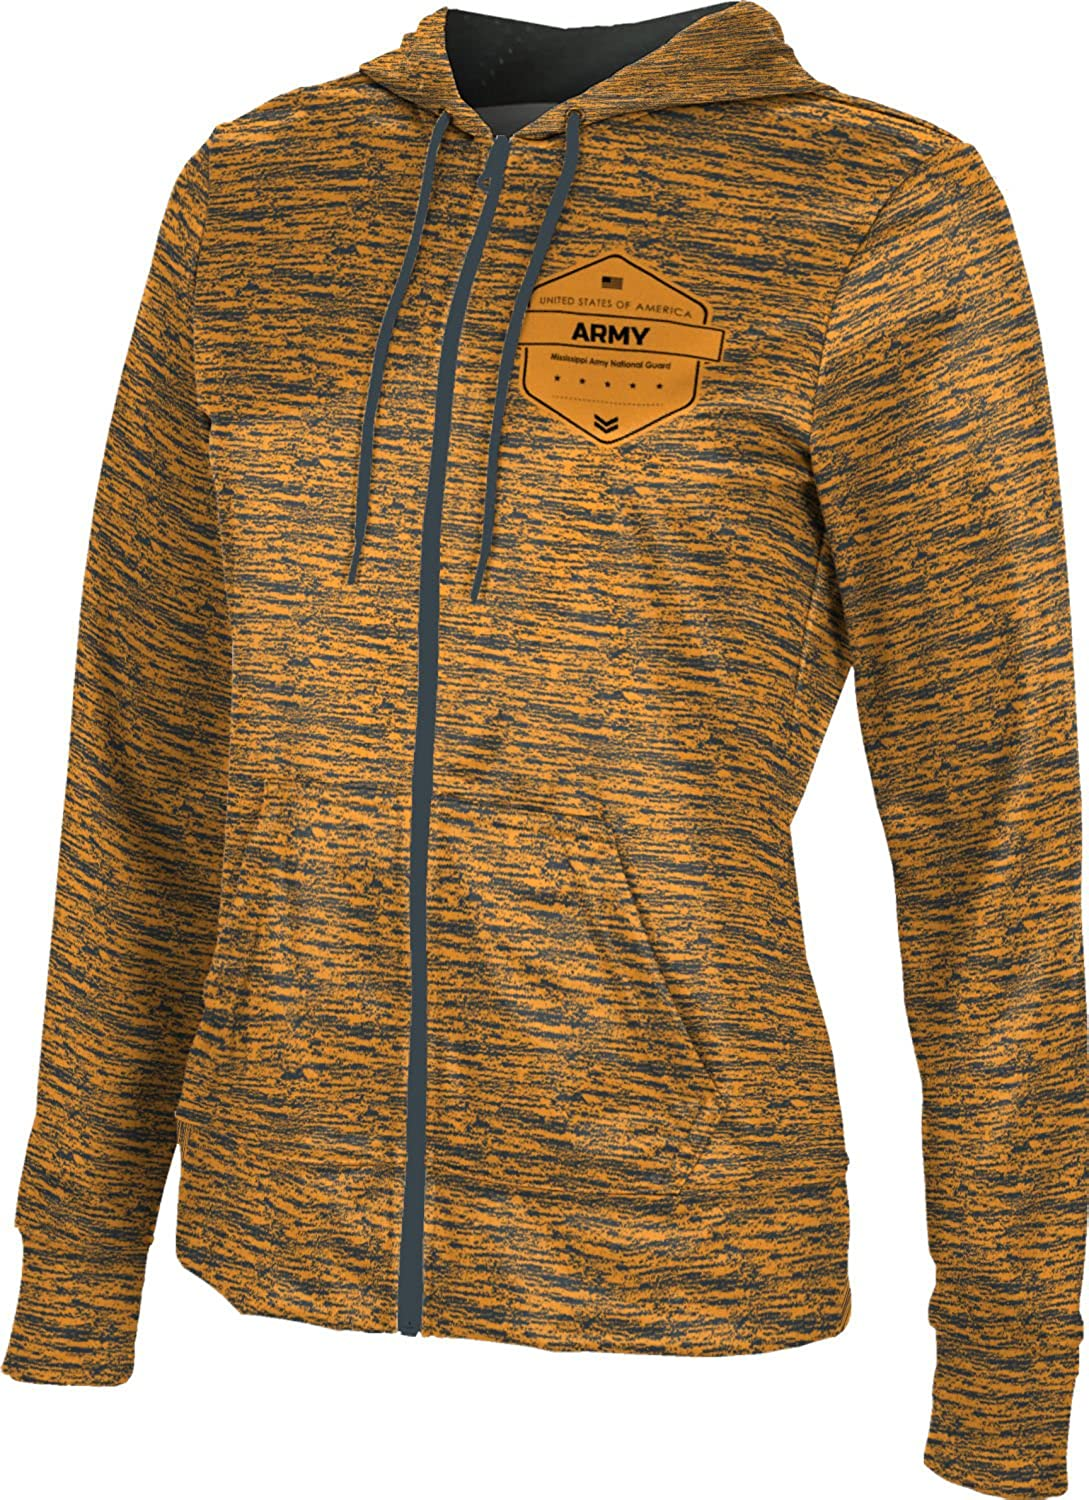 Women's Mississippi Army National Guard Military Brushed Fullzip Hoodie